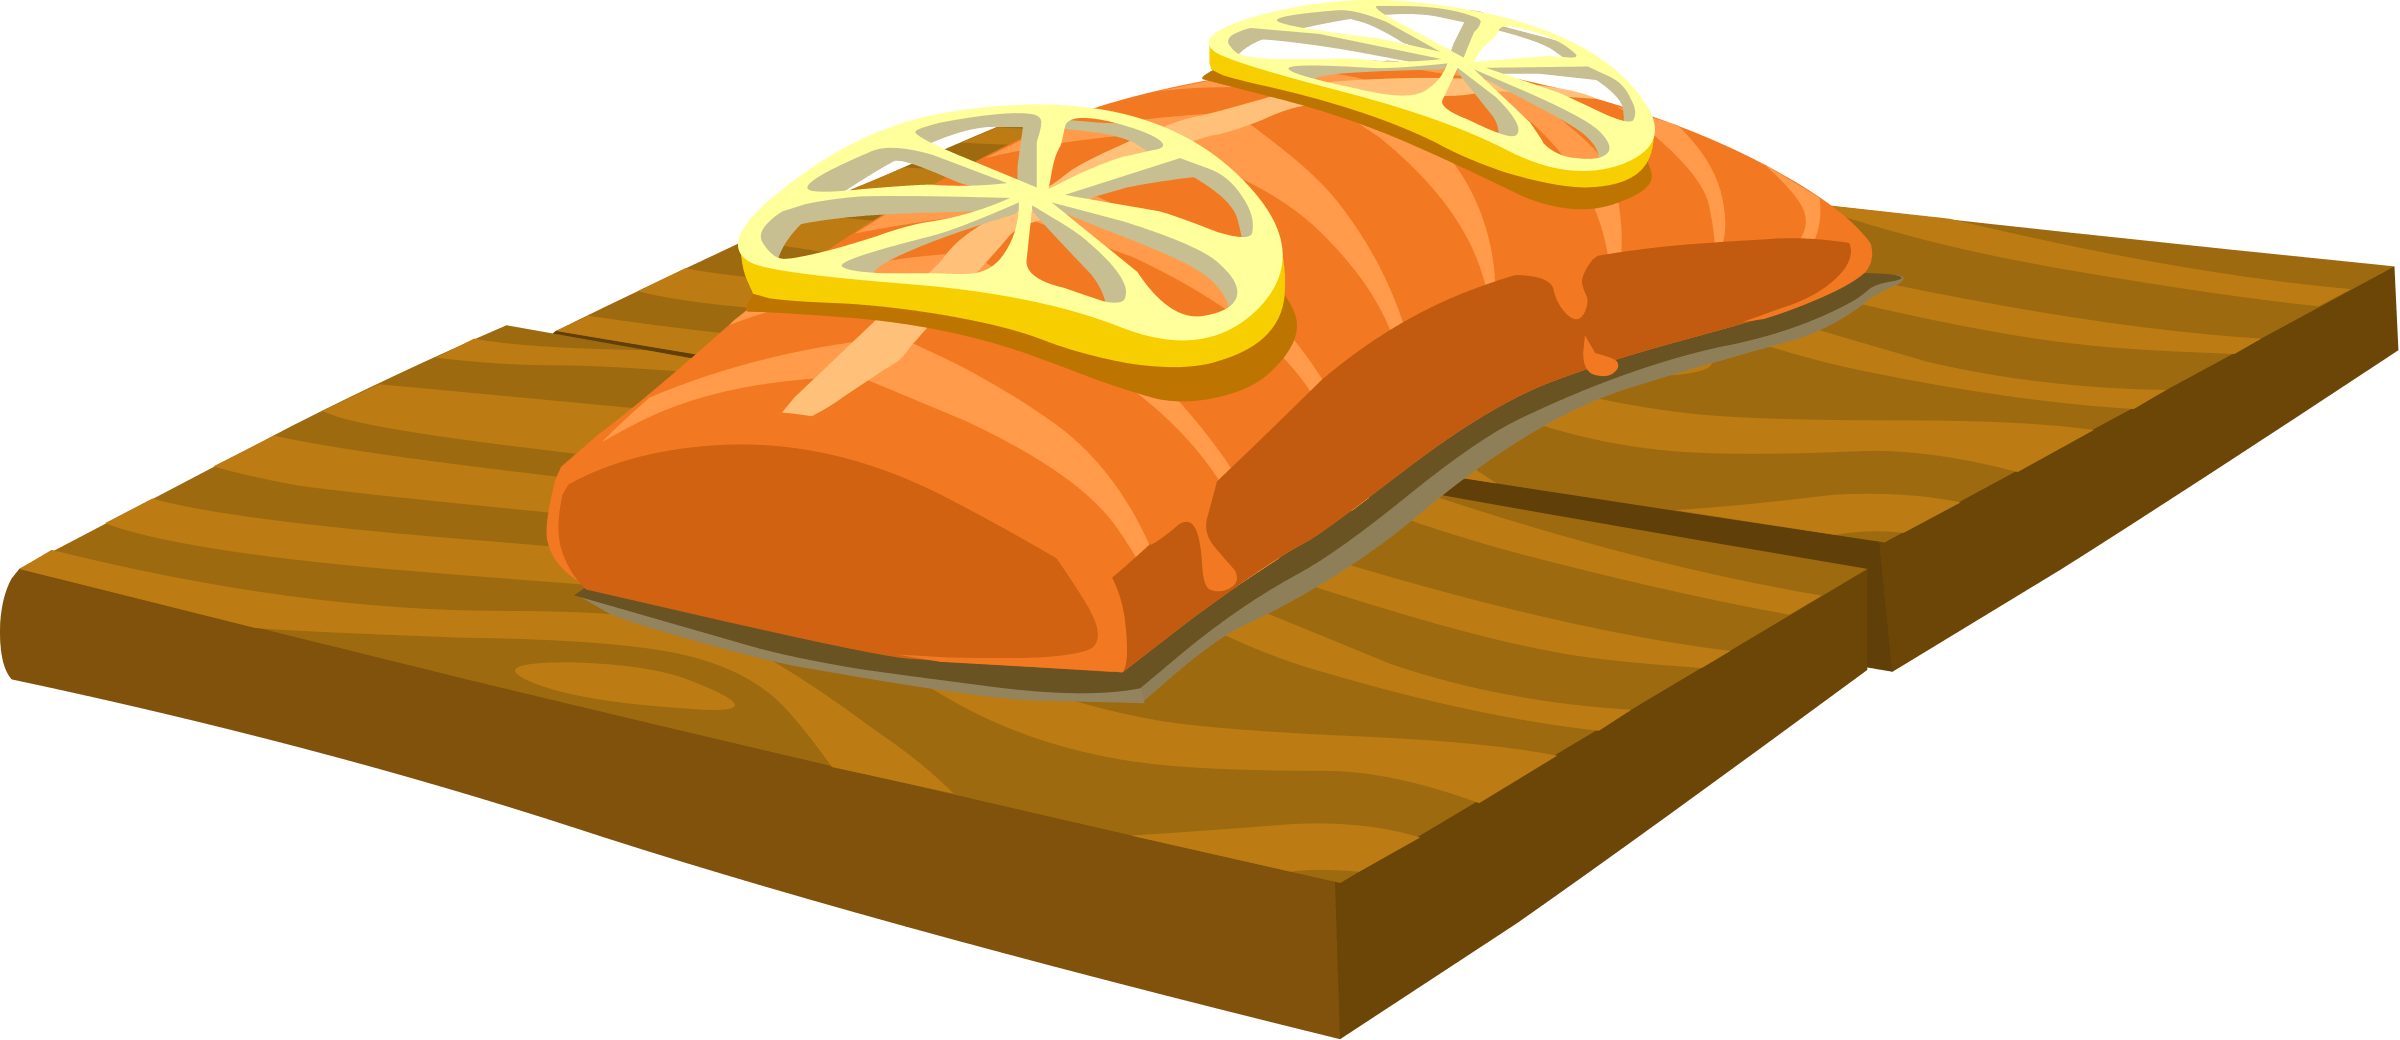 Free lunch meat cliparts. Dinner clipart food clip art